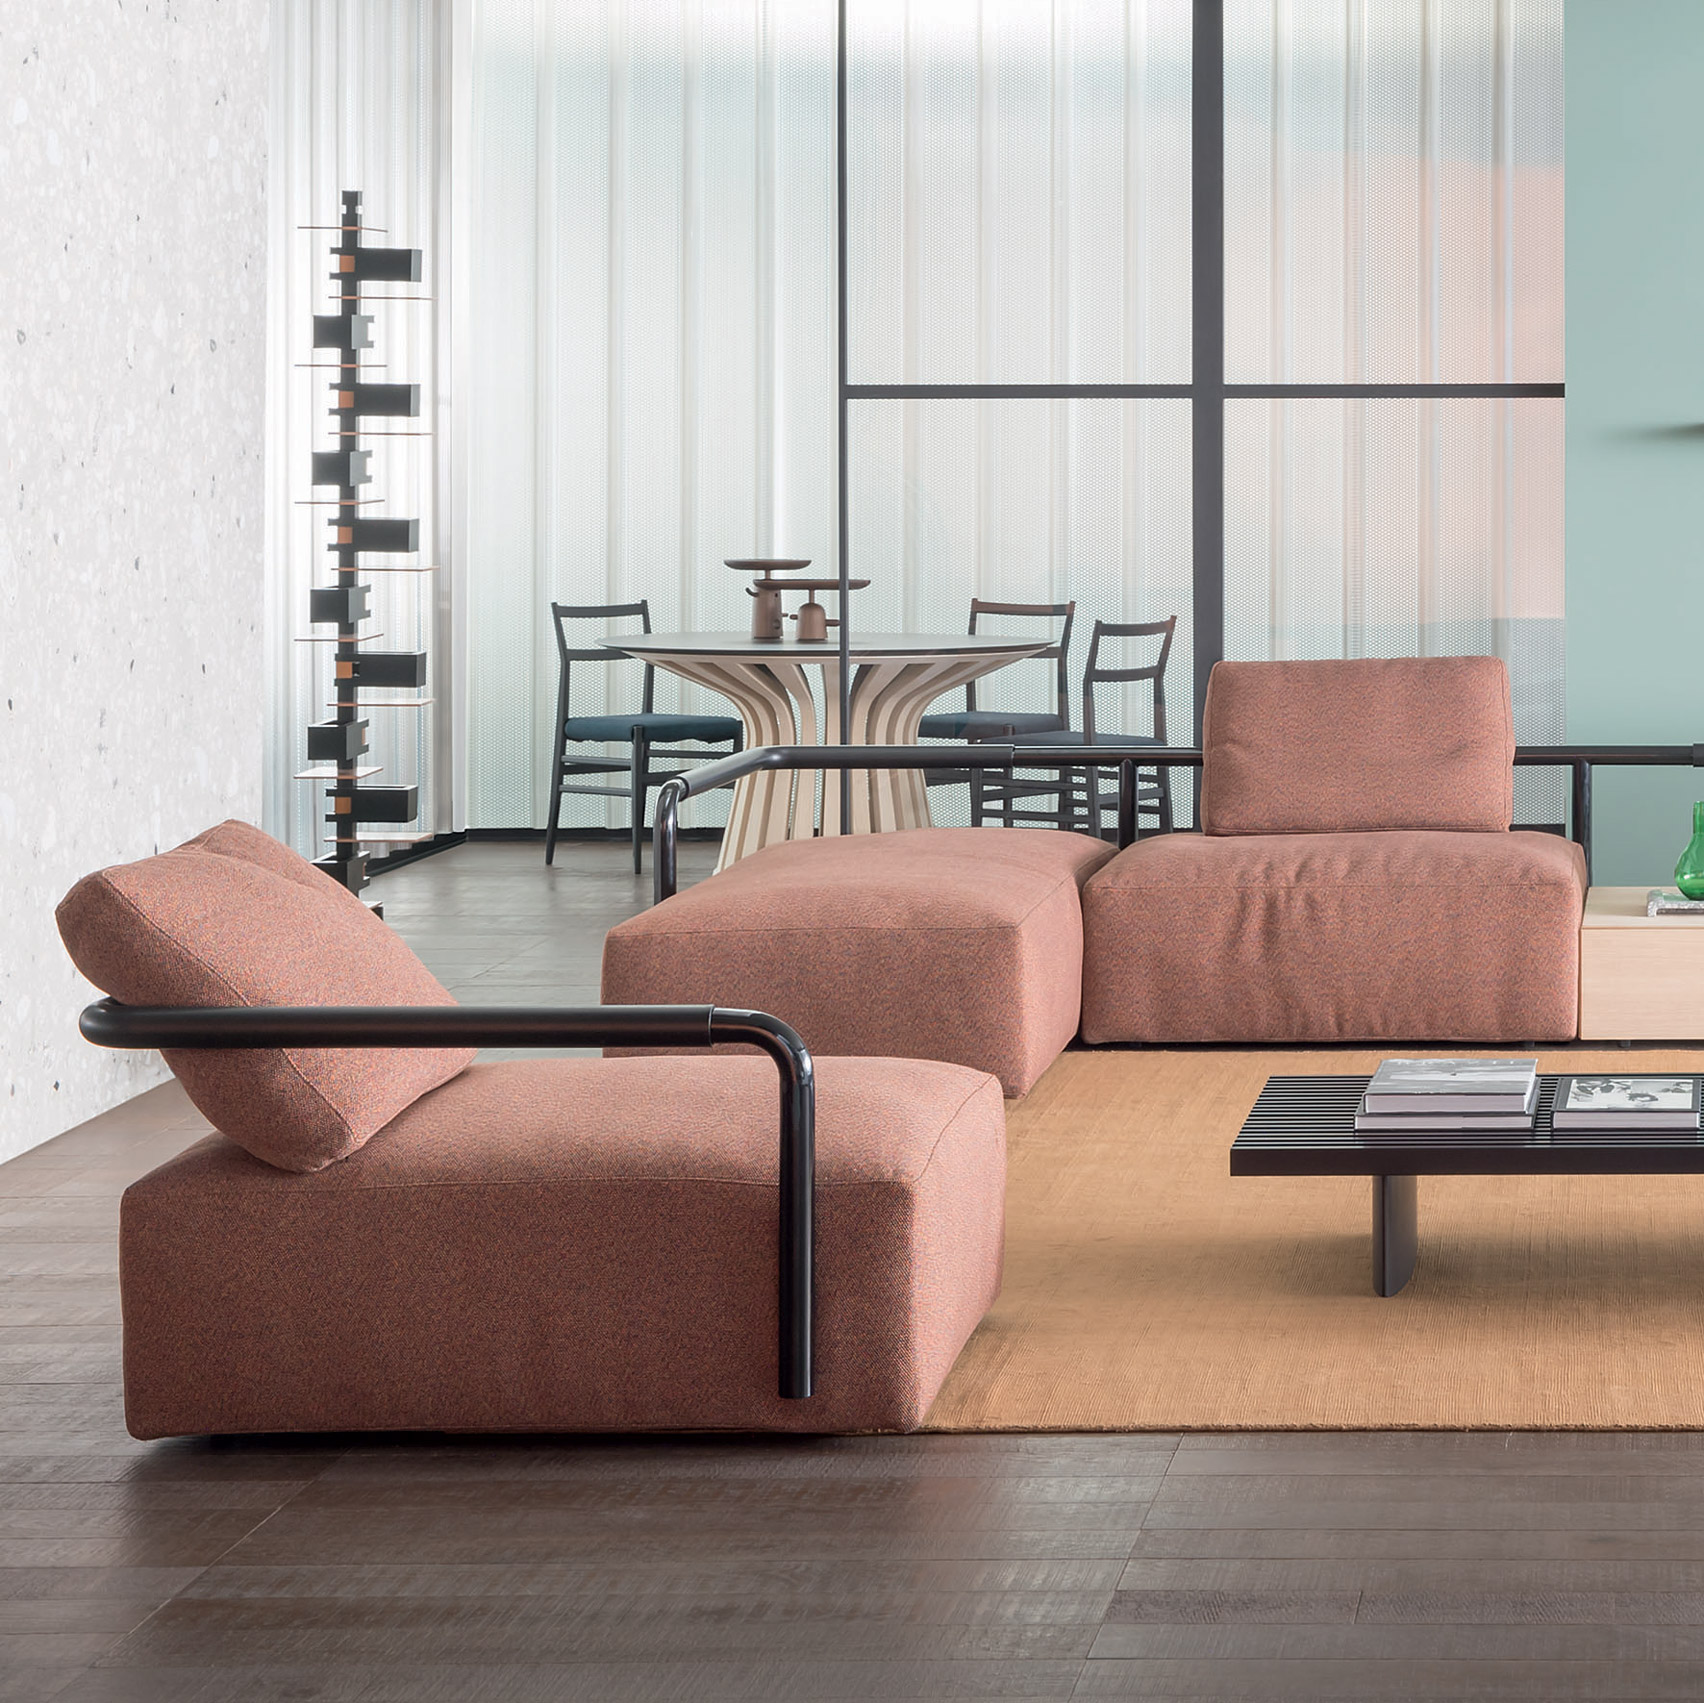 Milan: Cassina new collection / Soft Props by Konstantin Grcic